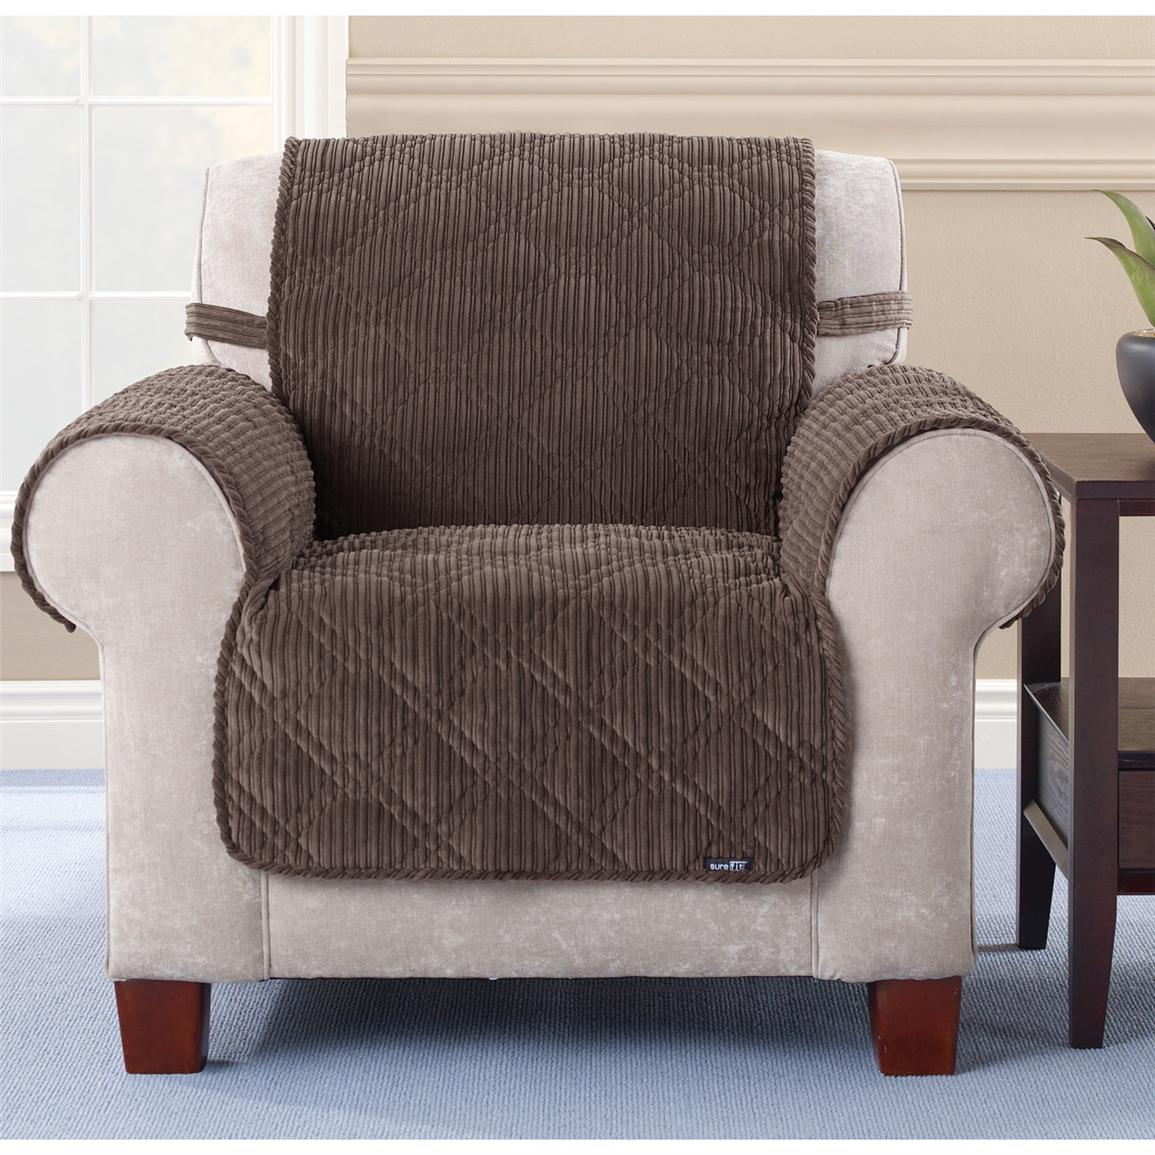 Sure Fit Quilted Corduroy Chair Pet Cover 292844 Furniture